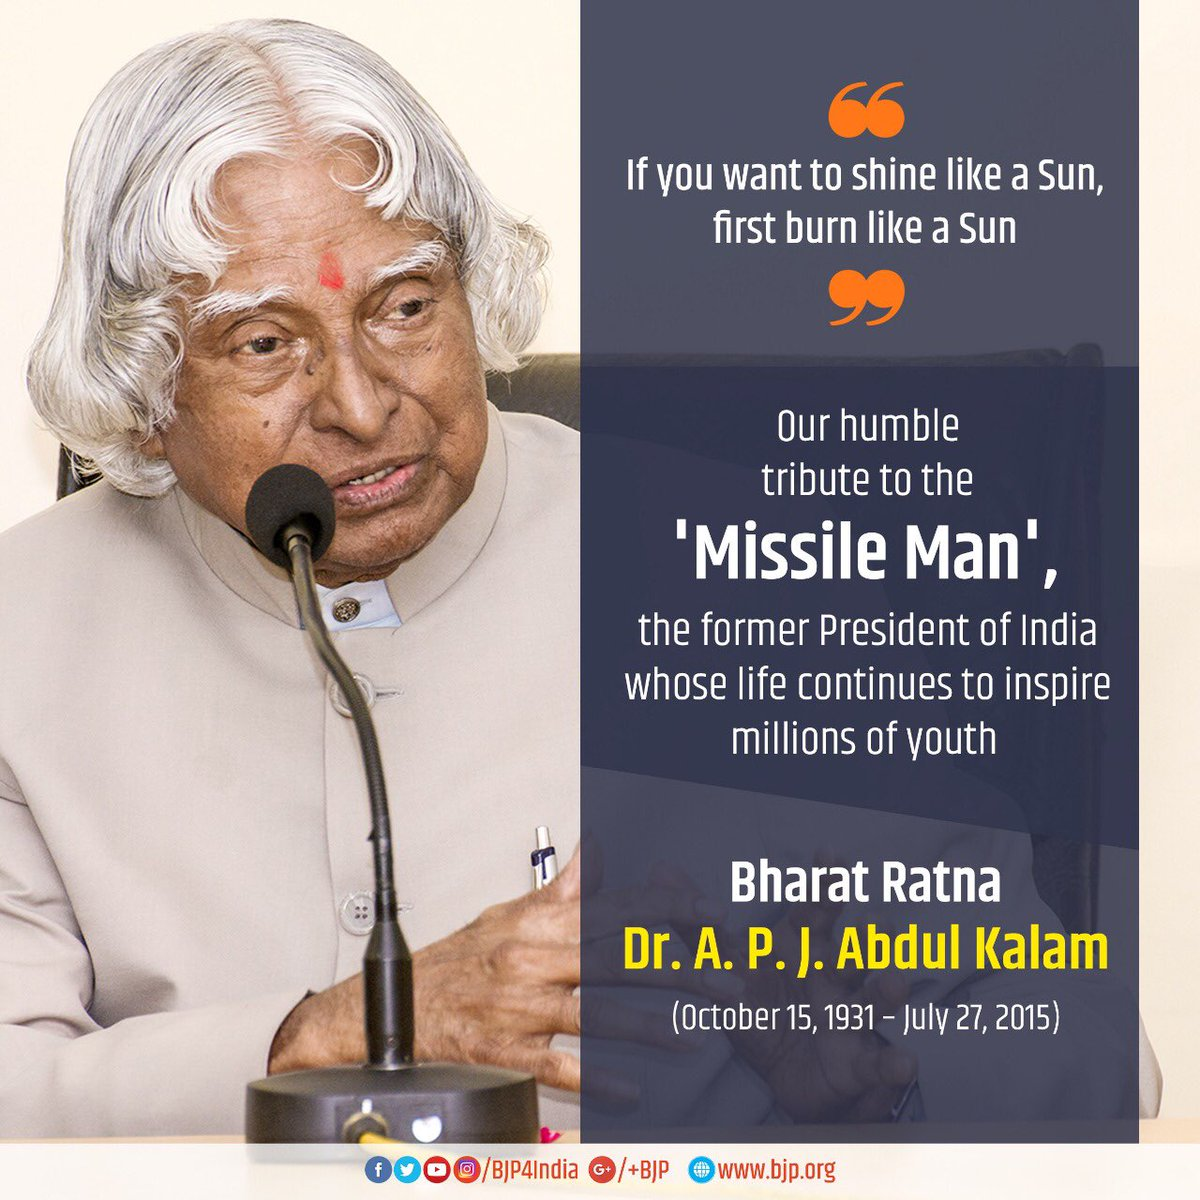 king of fire bharat ratna dr a p j abdul A tribute to dr apj abdul kalam, missile man of india, on 15th october, the great scientist, leader, motivator was born in india his name is dr dr abdul kalam won many awards in his career including highest civilian award bharat ratna by govt of india.